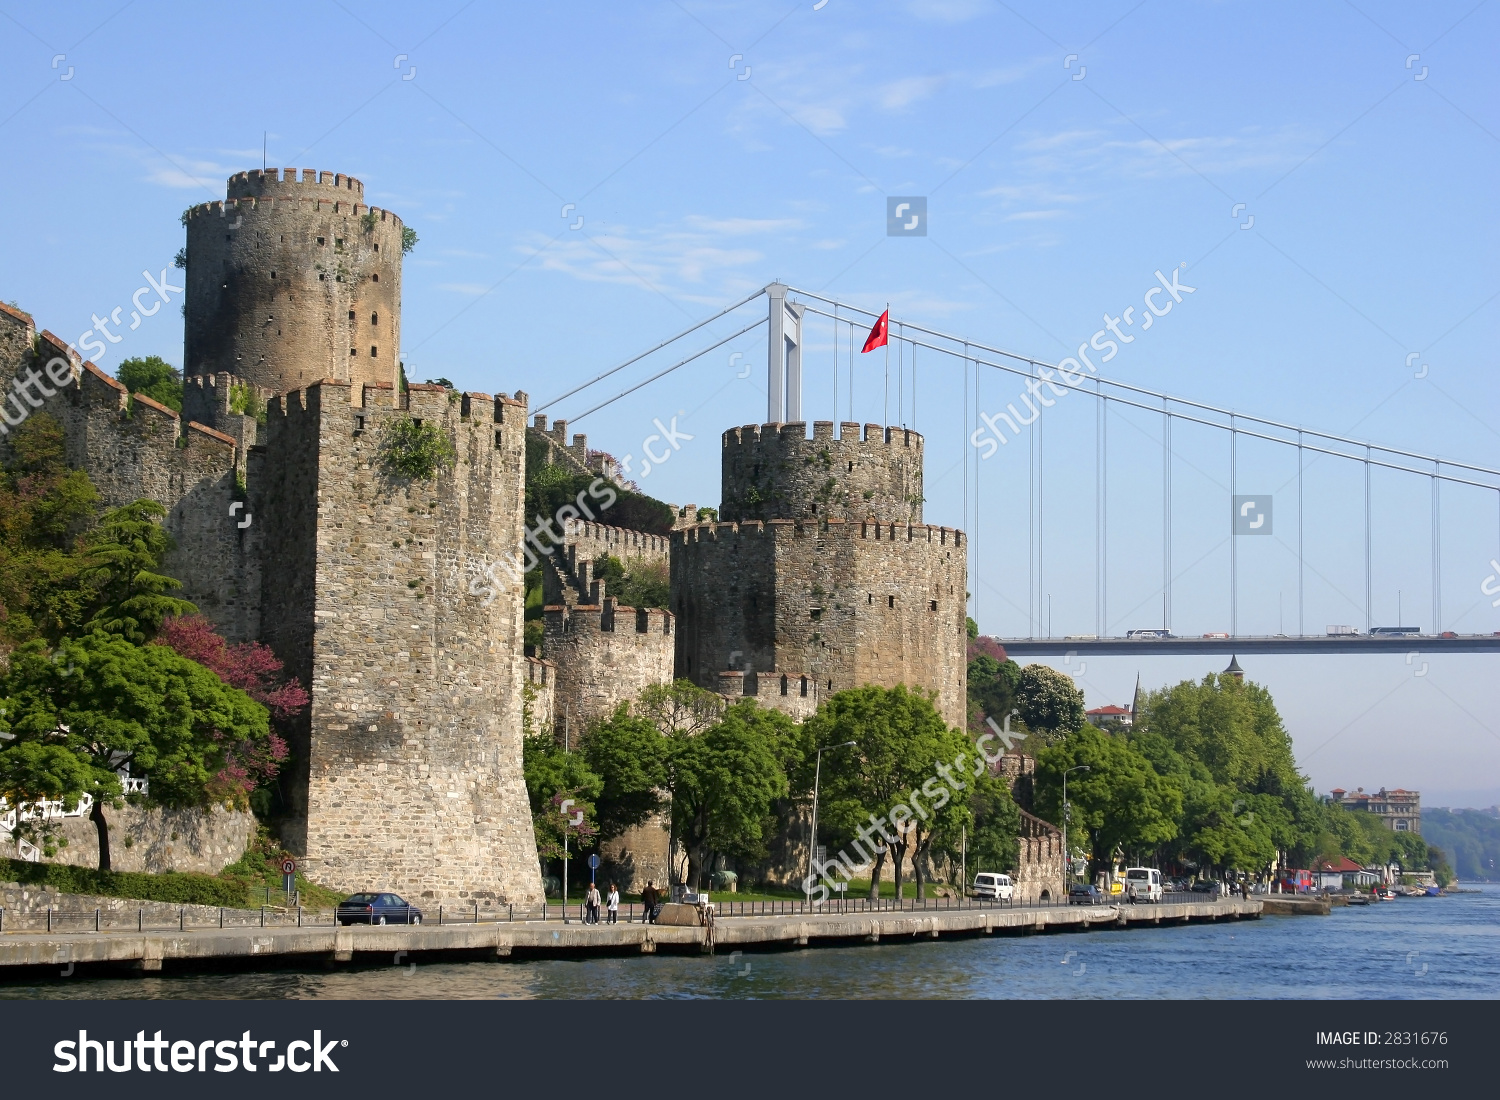 Fatih Sultan Mehmet Bridge Castle On Stock Photo 2831676.